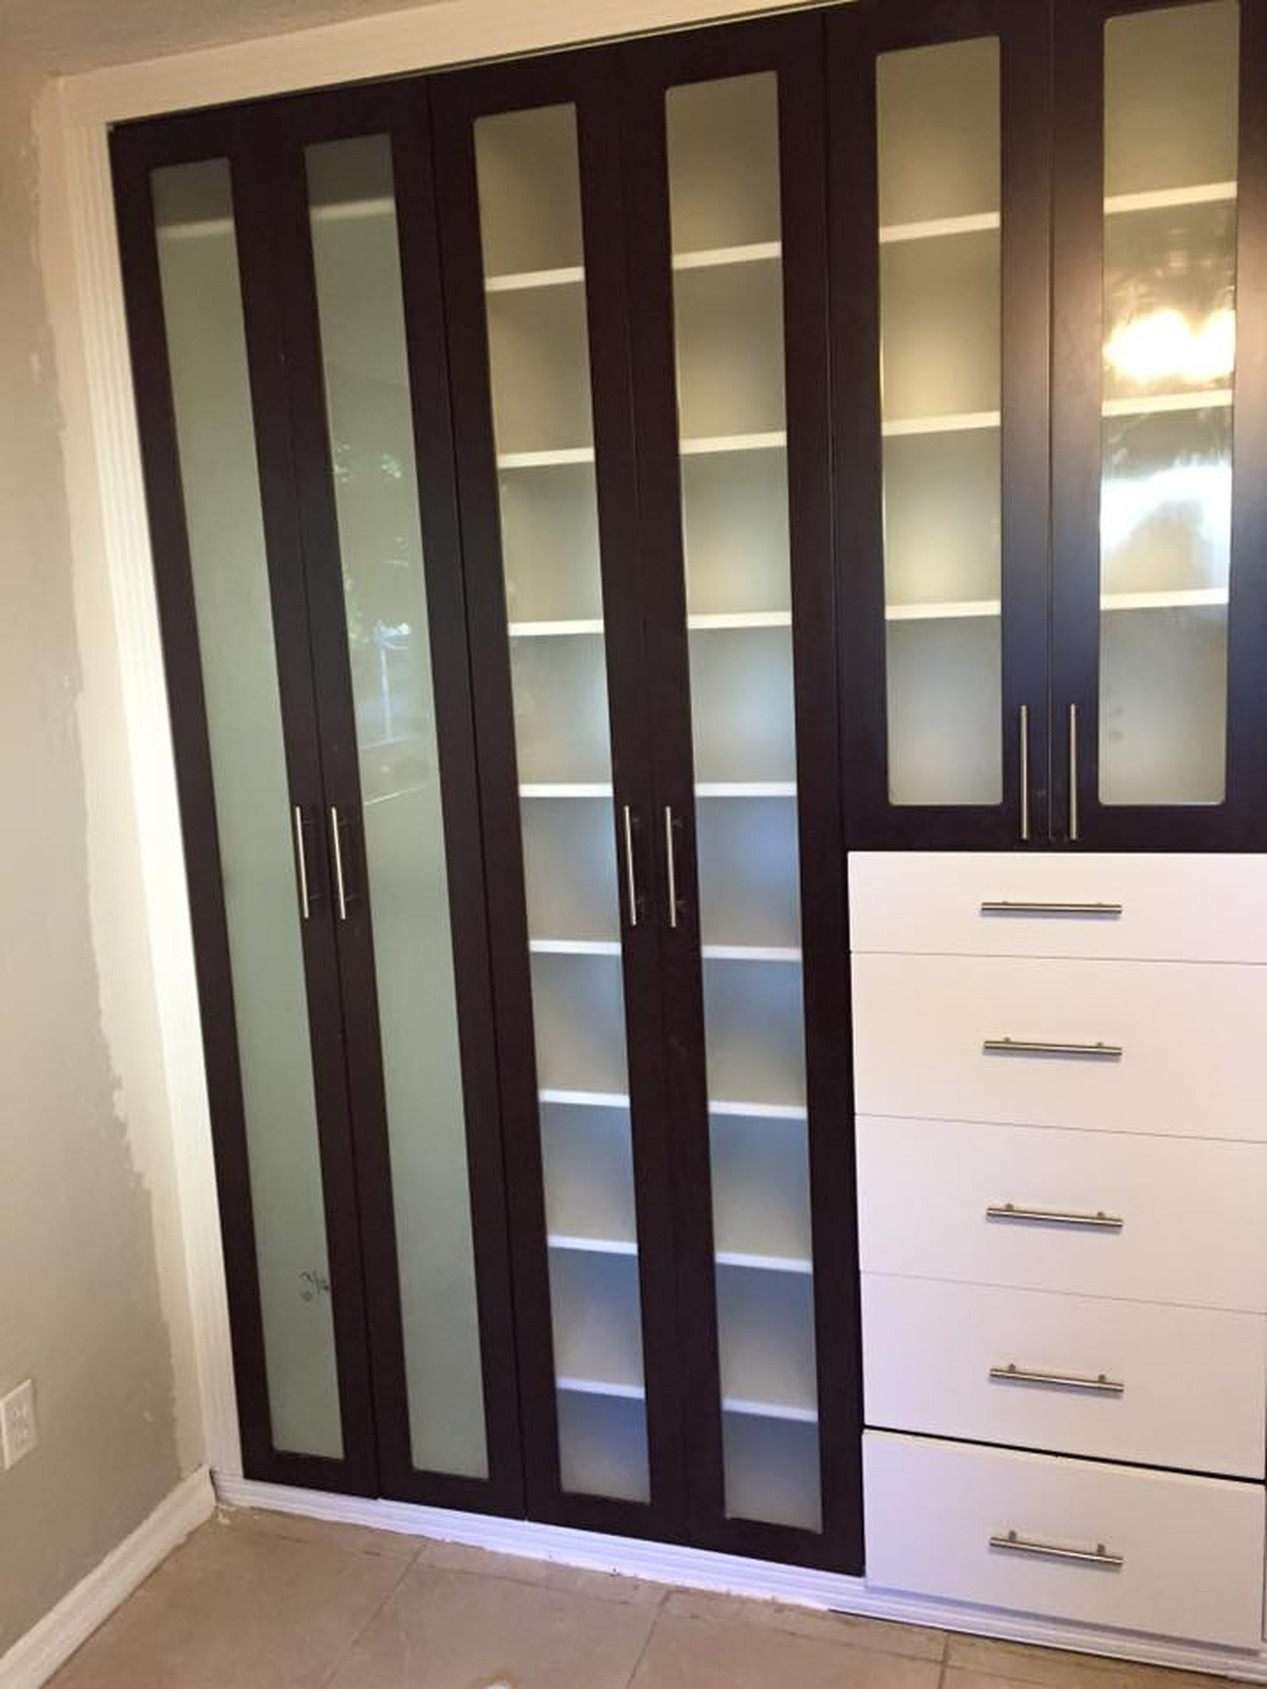 Reach-In Closets | Americlosets Inc.